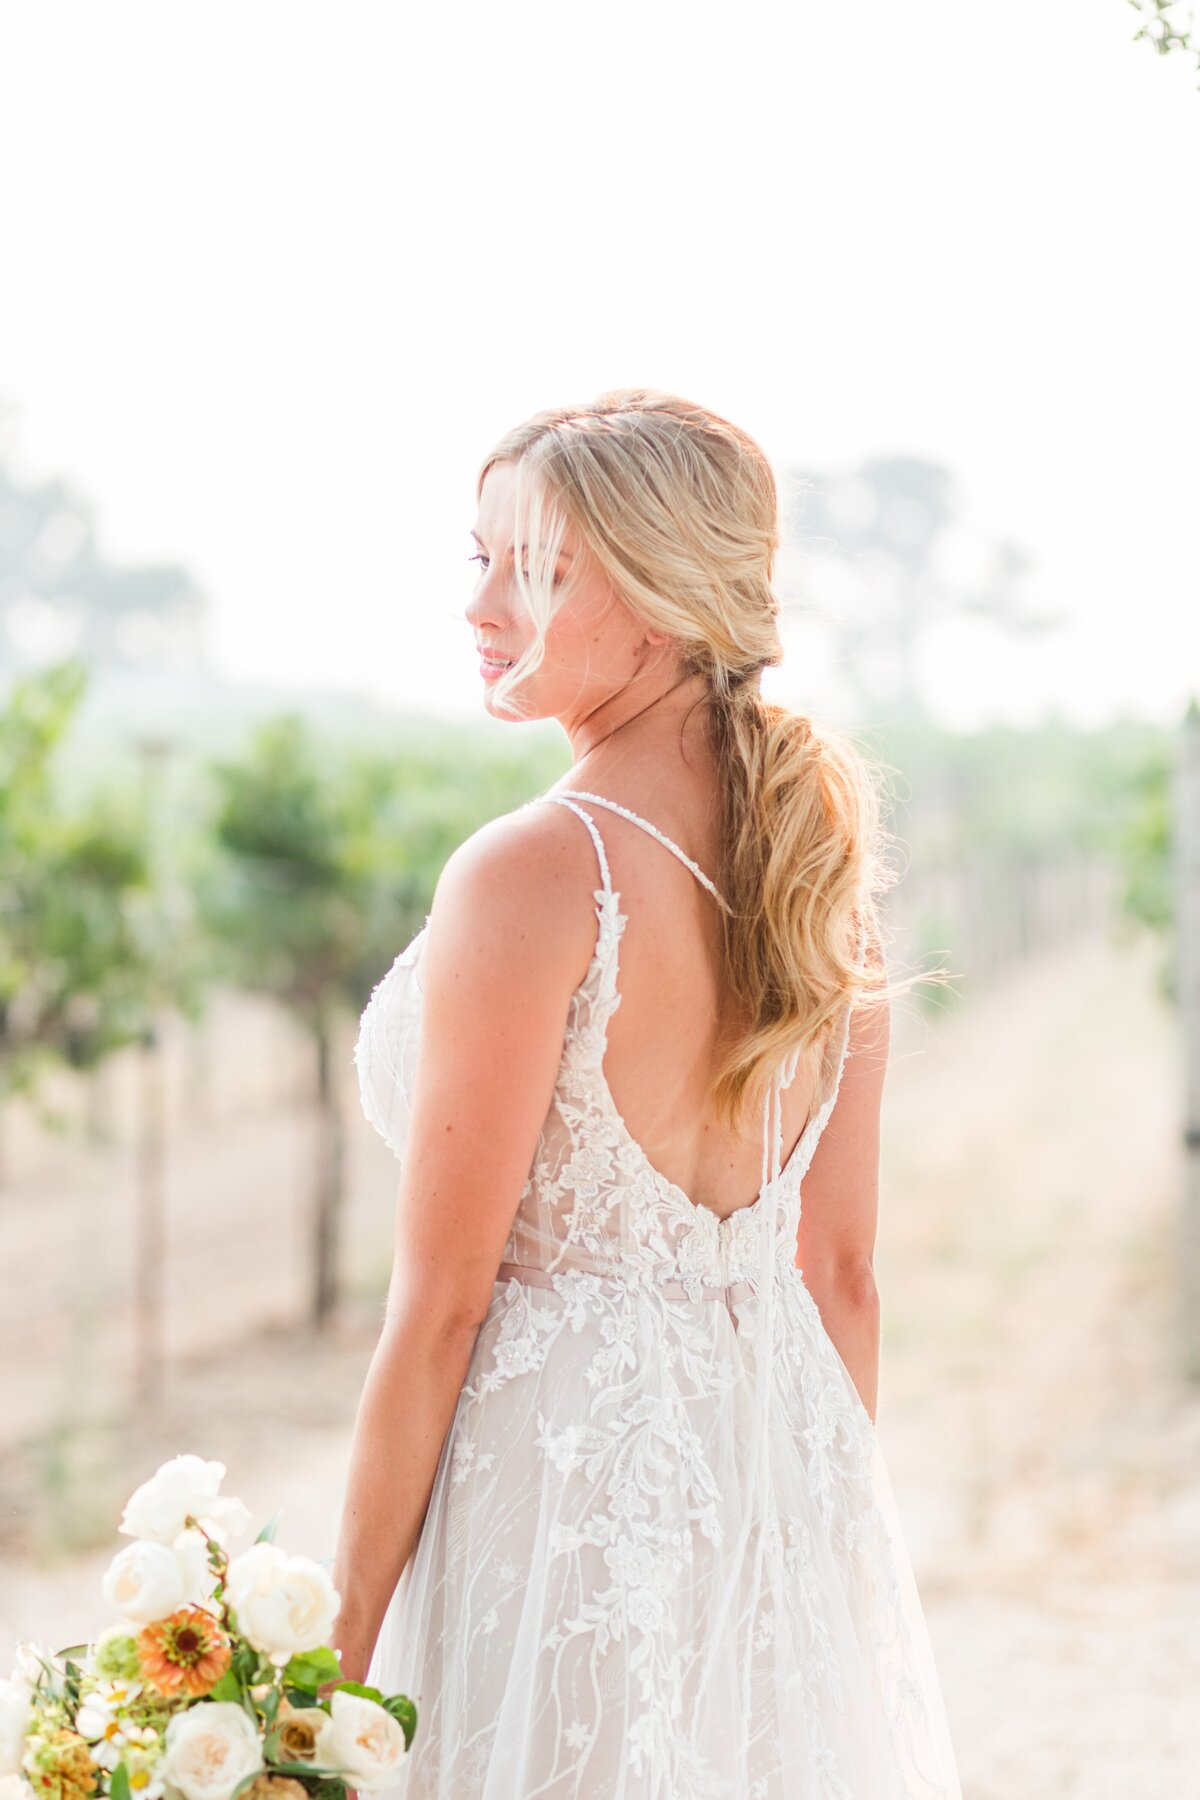 Kelli-Bee-Photography-Blog-Sunstone-Winery-Villa-Styled-Wedding-0100